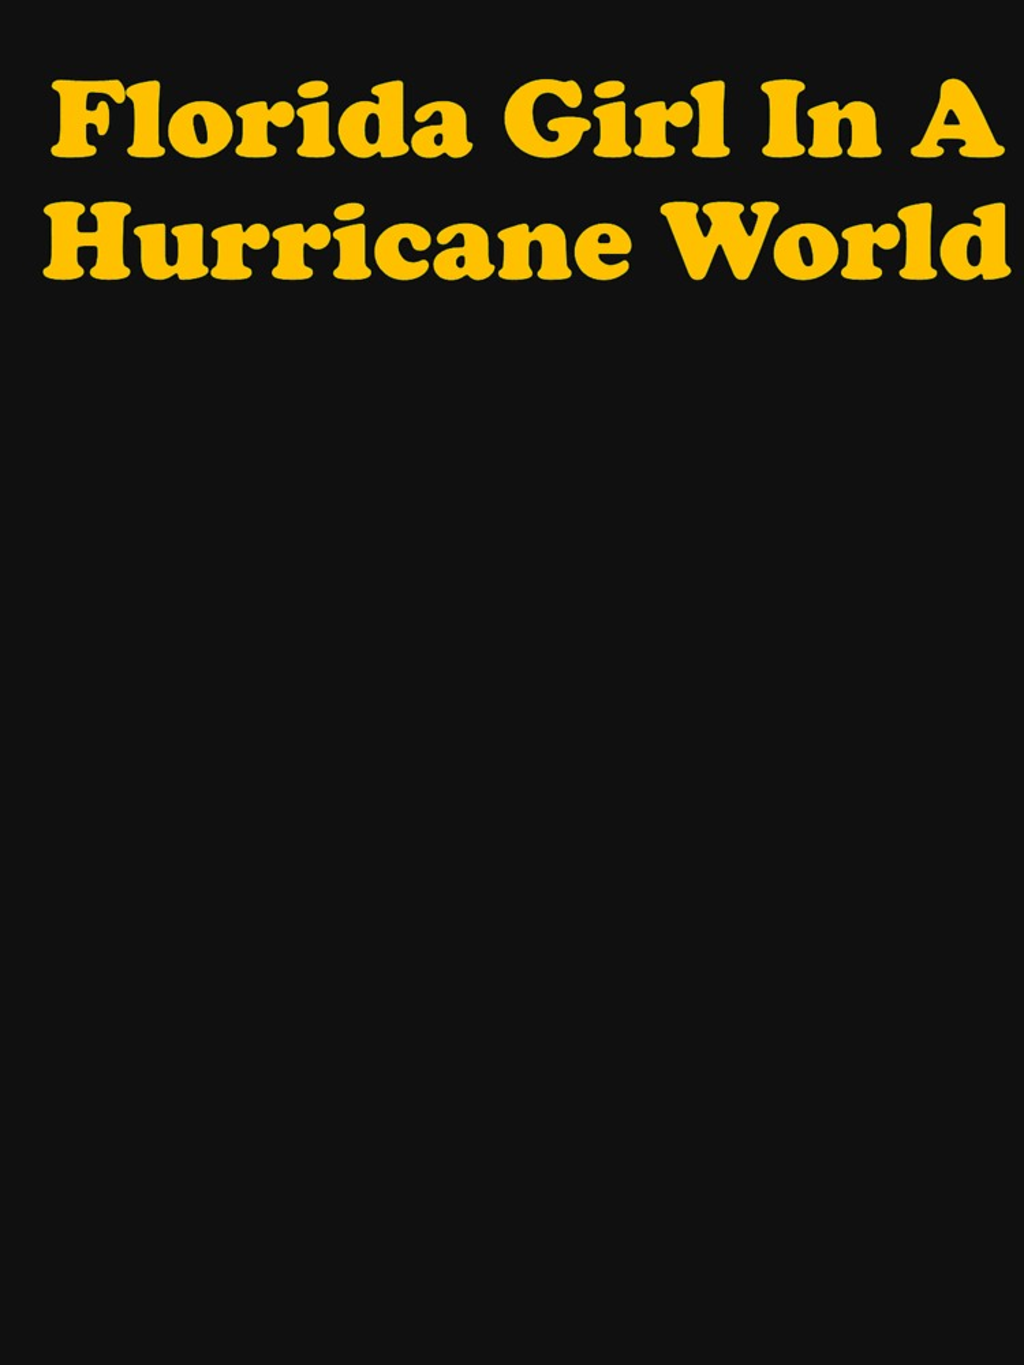 RedBubble: Florida Girl In A Hurricane World - Gold